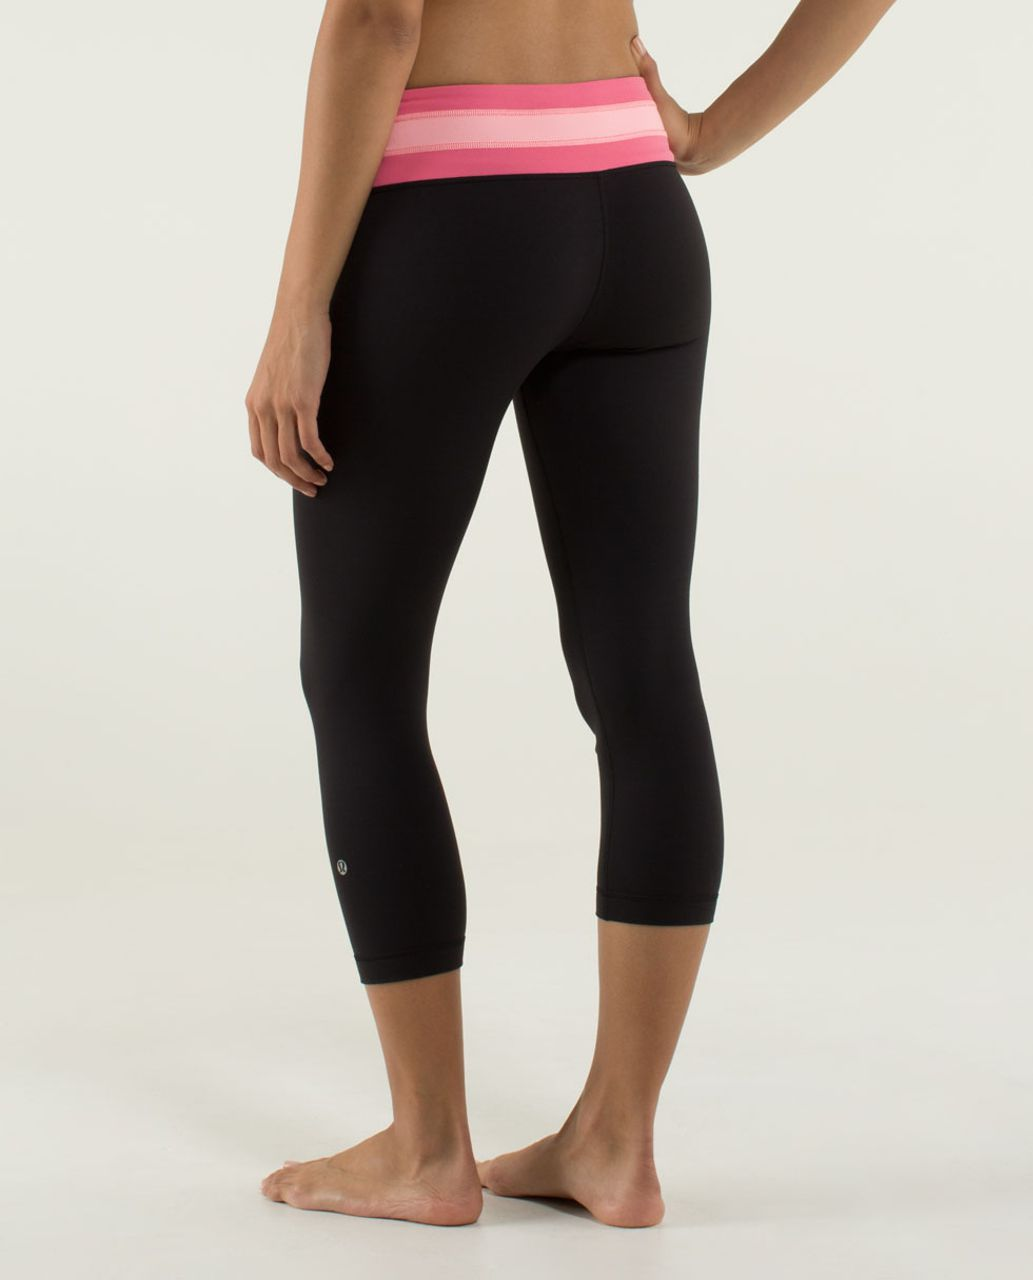 Lululemon Wunder Under Crop *Full-On Luon - Black / Quilt Winter 13-01